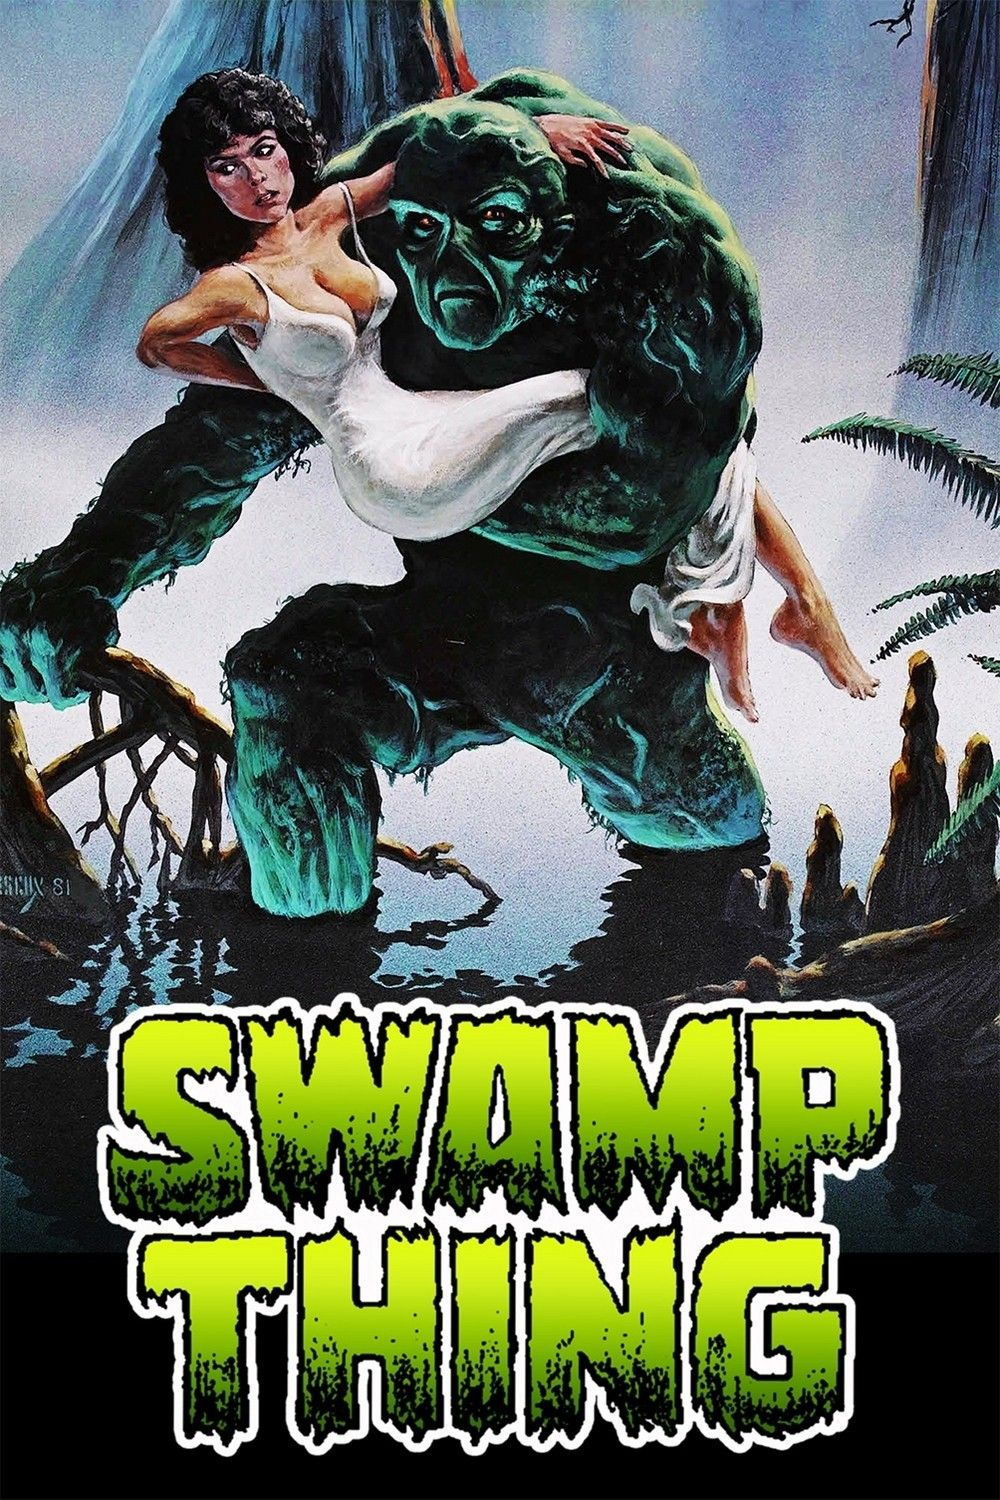 Swamp Thing - Review: Swamp Thing (1982) 1h 31-min American science fiction  horror movie that was based on characters… | Swamp thing movie, Comics,  Swamp thing 1982